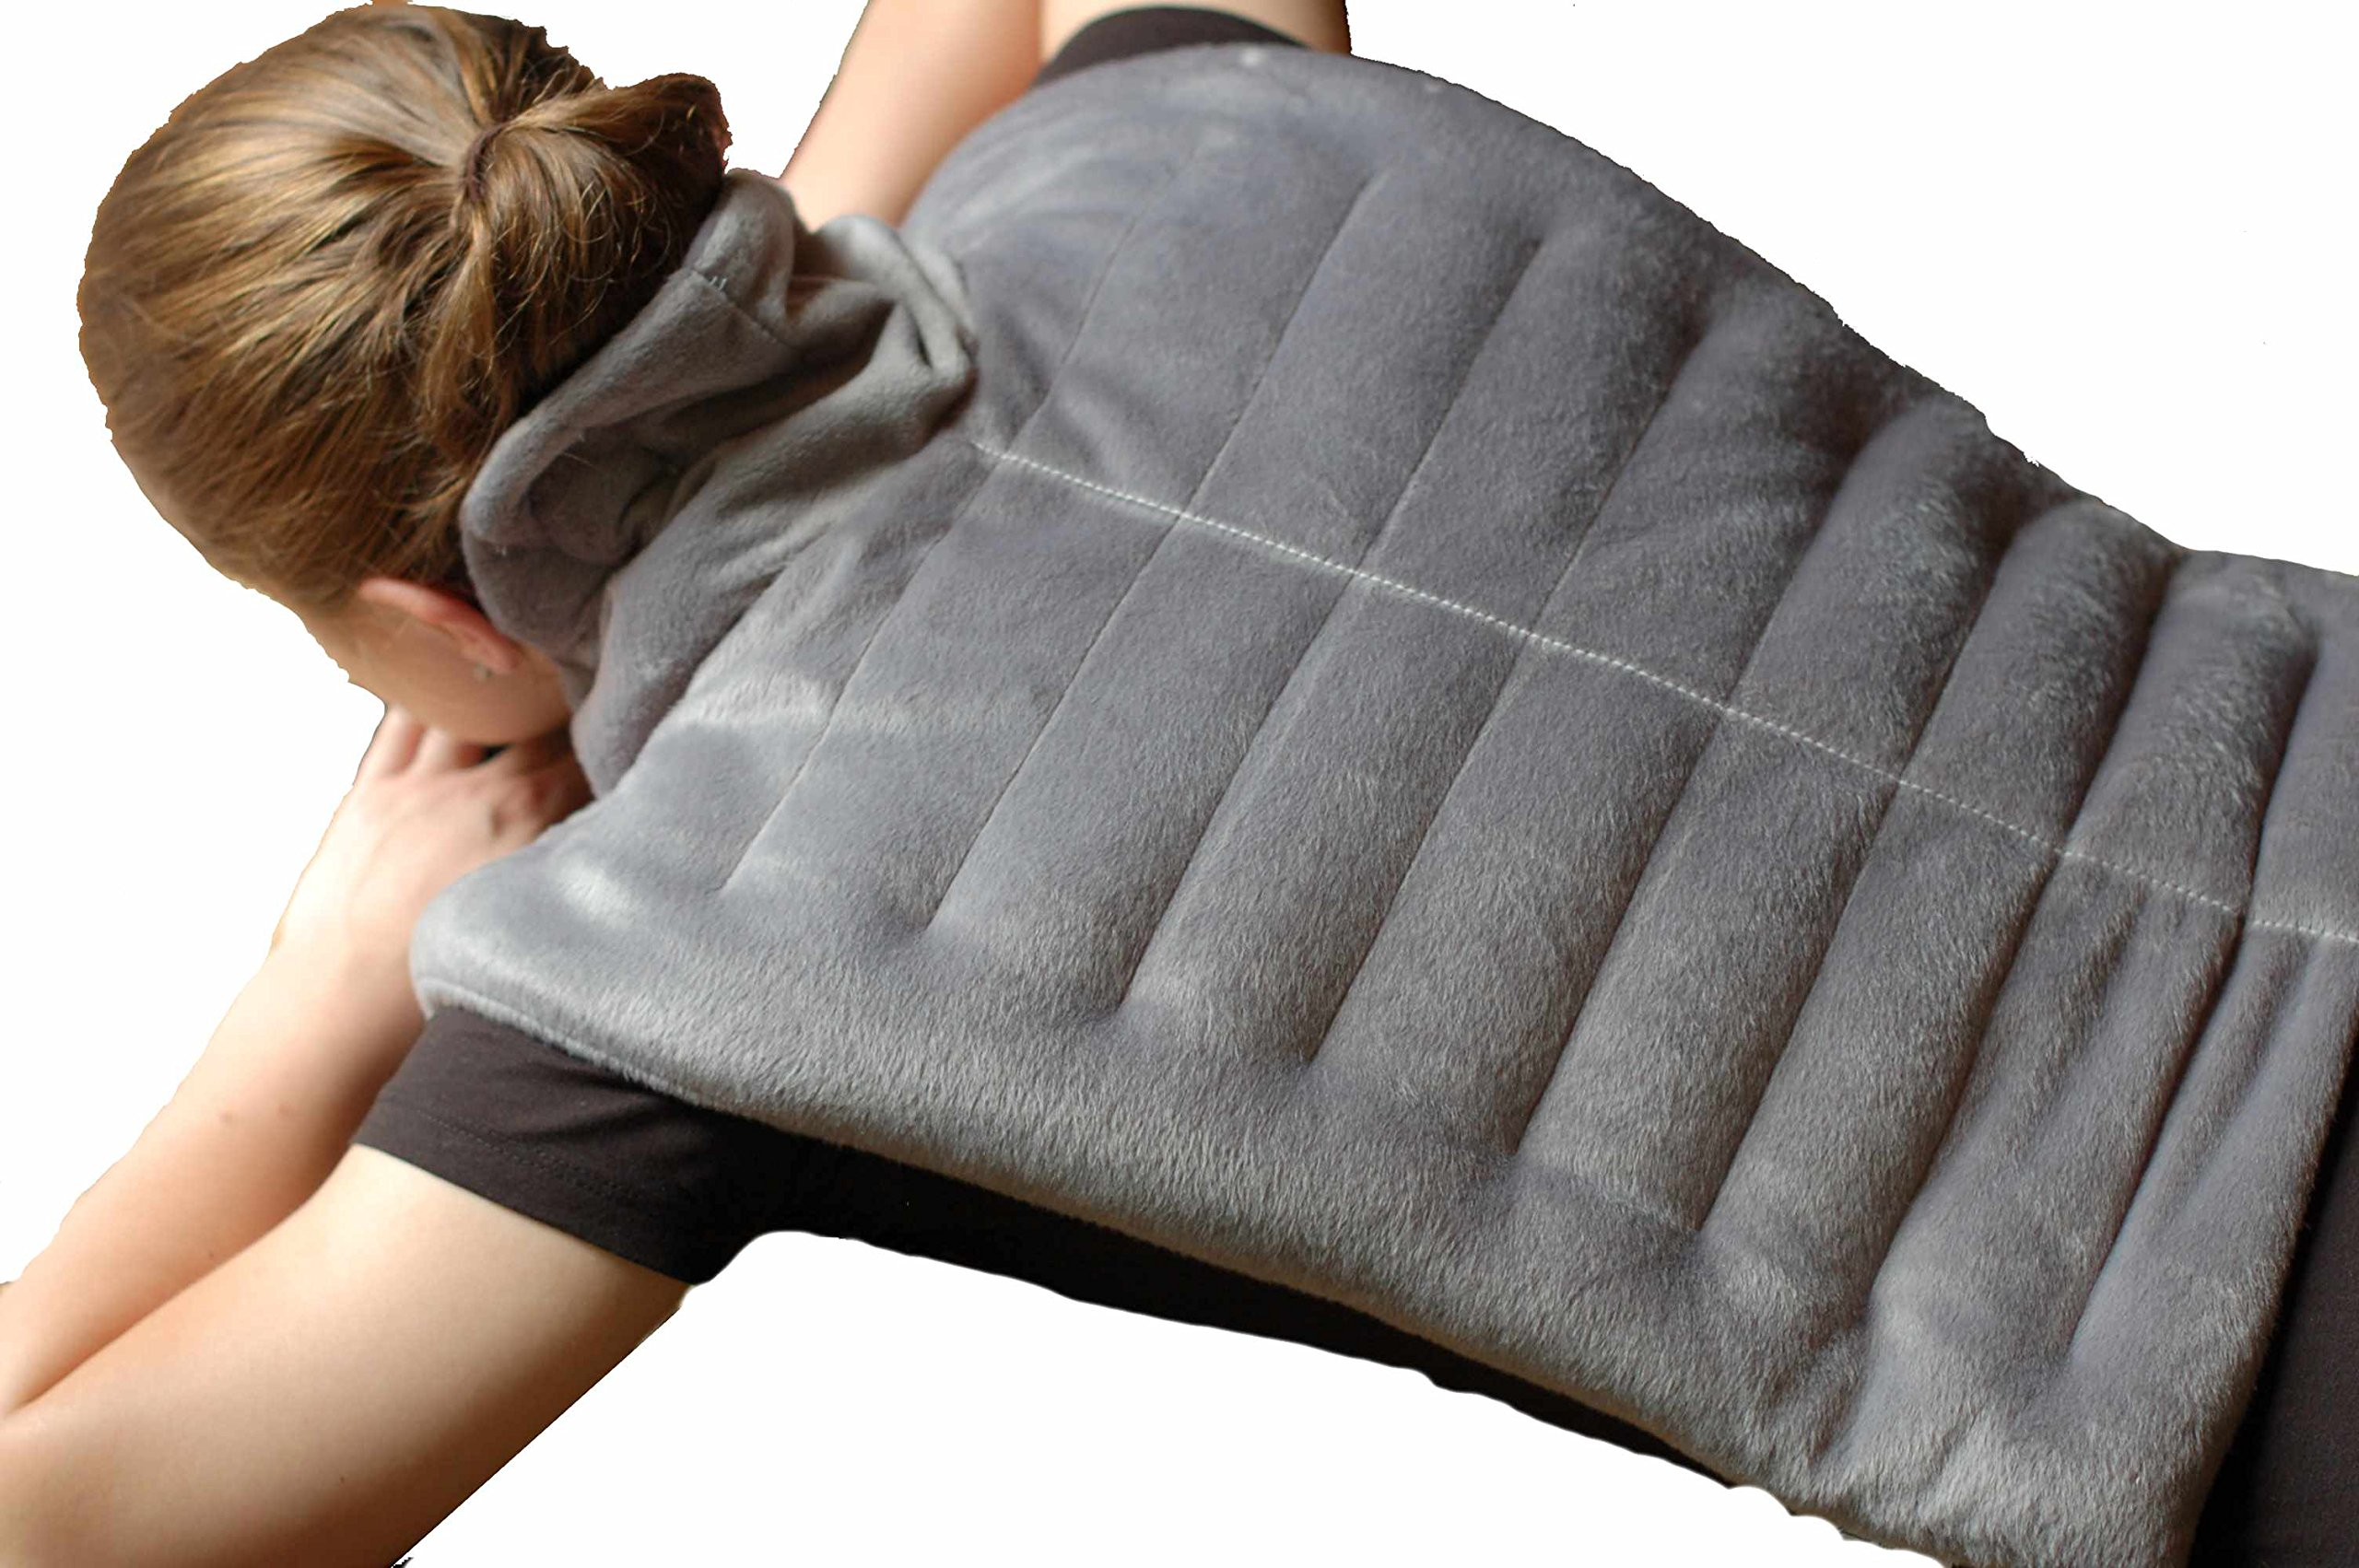 Premium Heated Herbal Hot/Cold Therapy Neck, Shoulder and Back Wrap - 16'' x 24'' by MARS WELLNESS